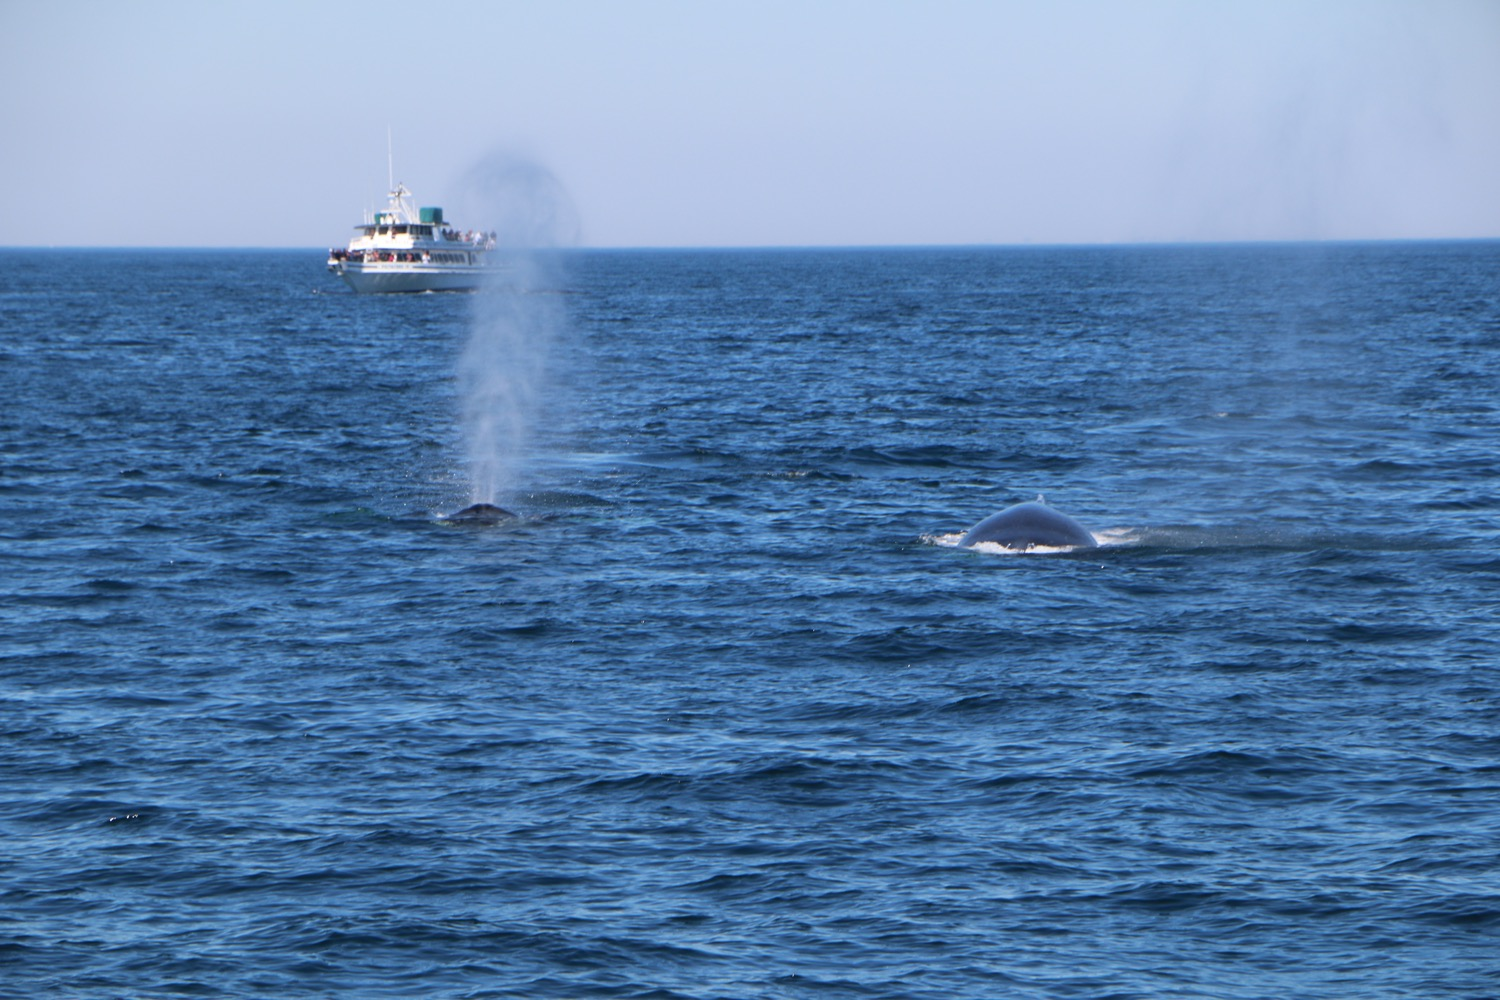 whale_watching_1